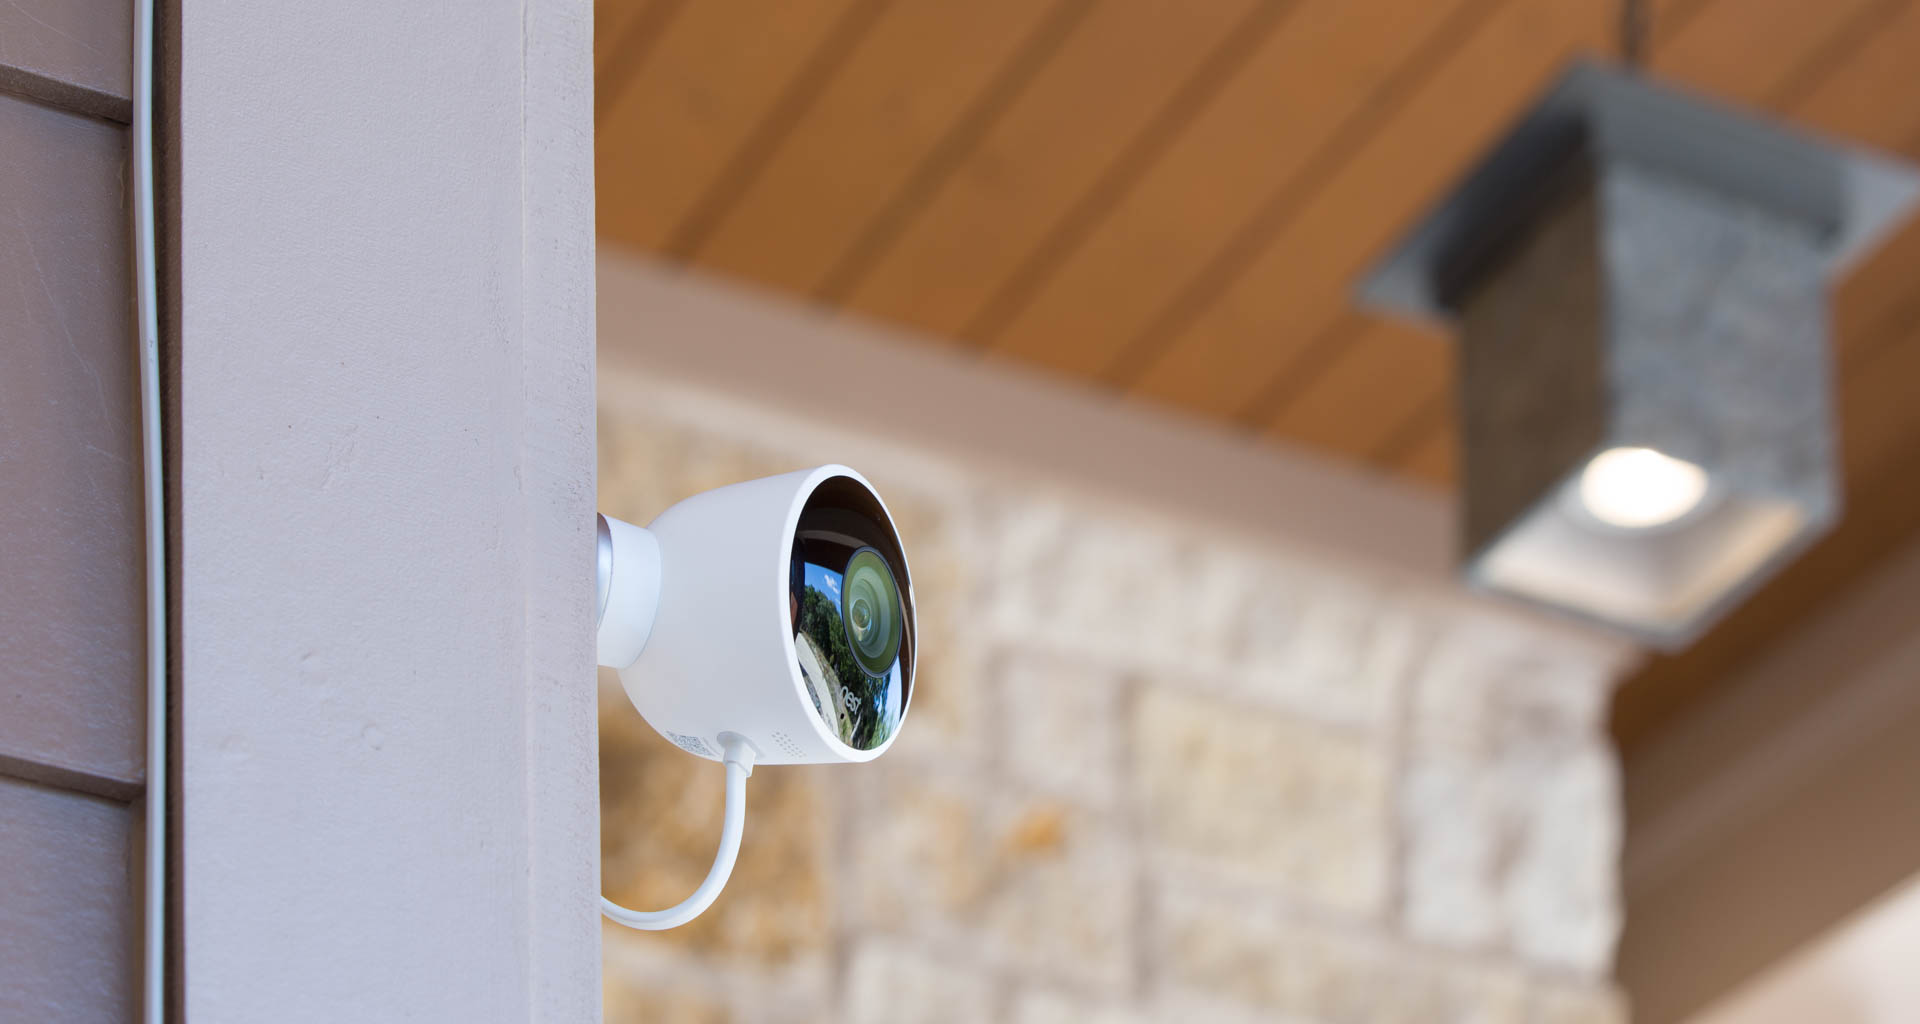 Security cameras, such as this Nest Cam Outdoor, offer video streaming services and will require incremental bandwidth. Image: Digitized House Media.